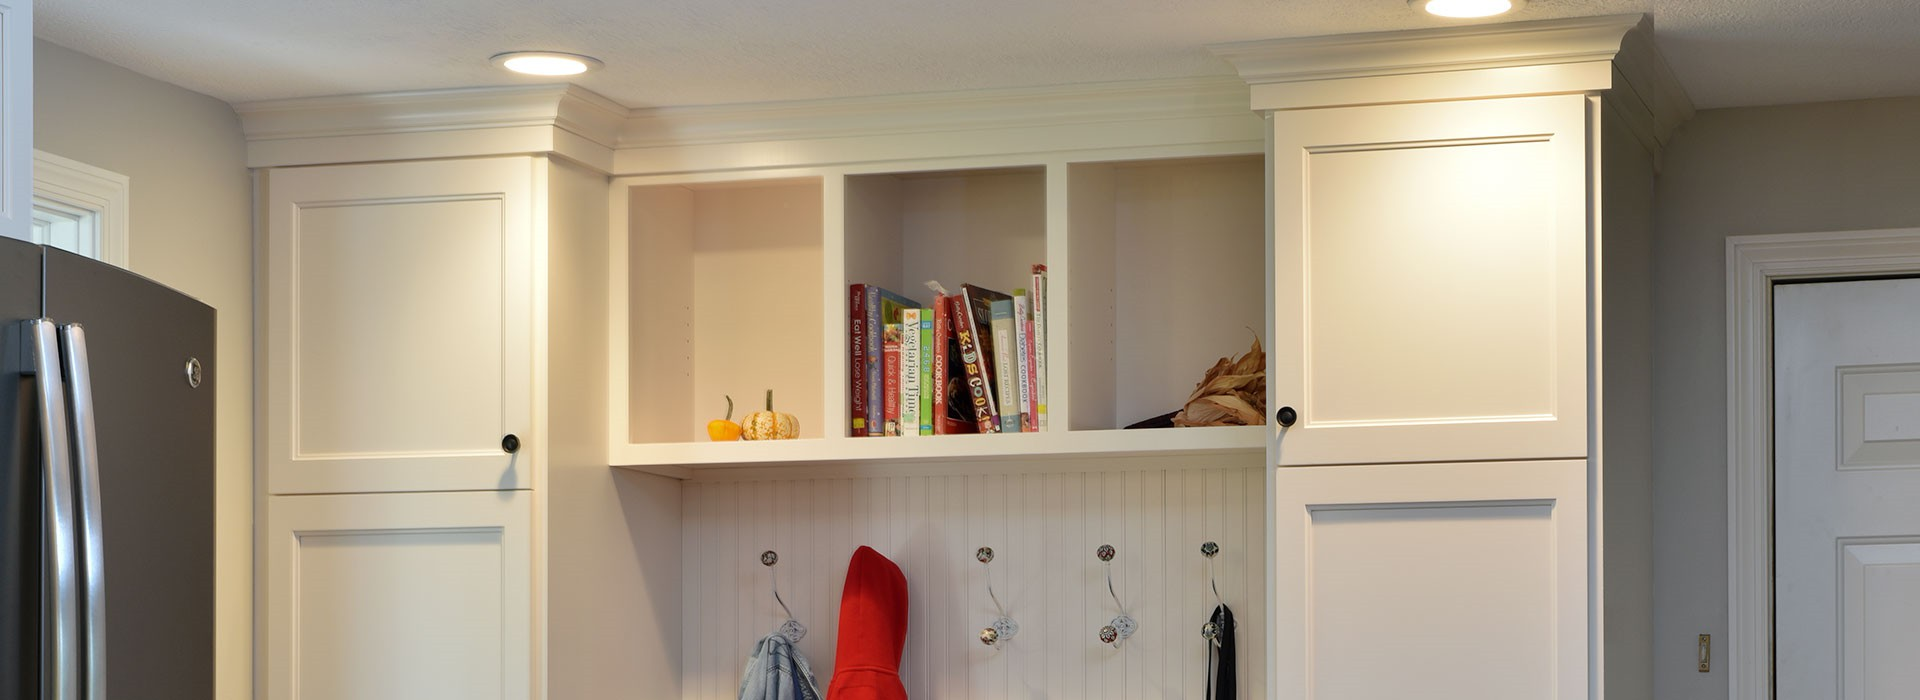 rack_and_pantry